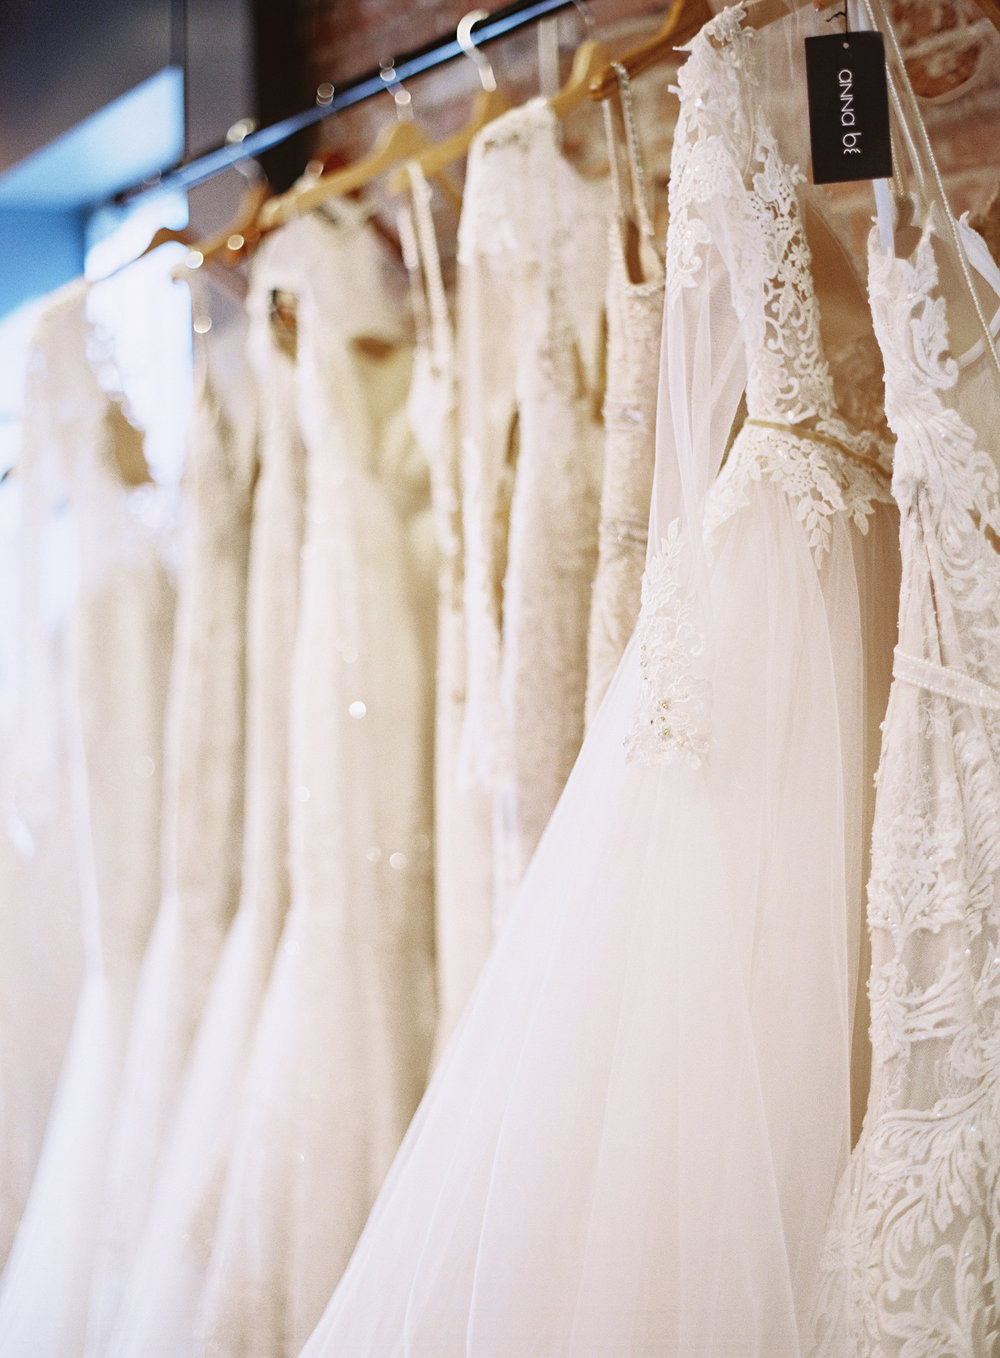 Bridal Blog - Denver, CO|anna bé Bridal Boutique Denver, CO